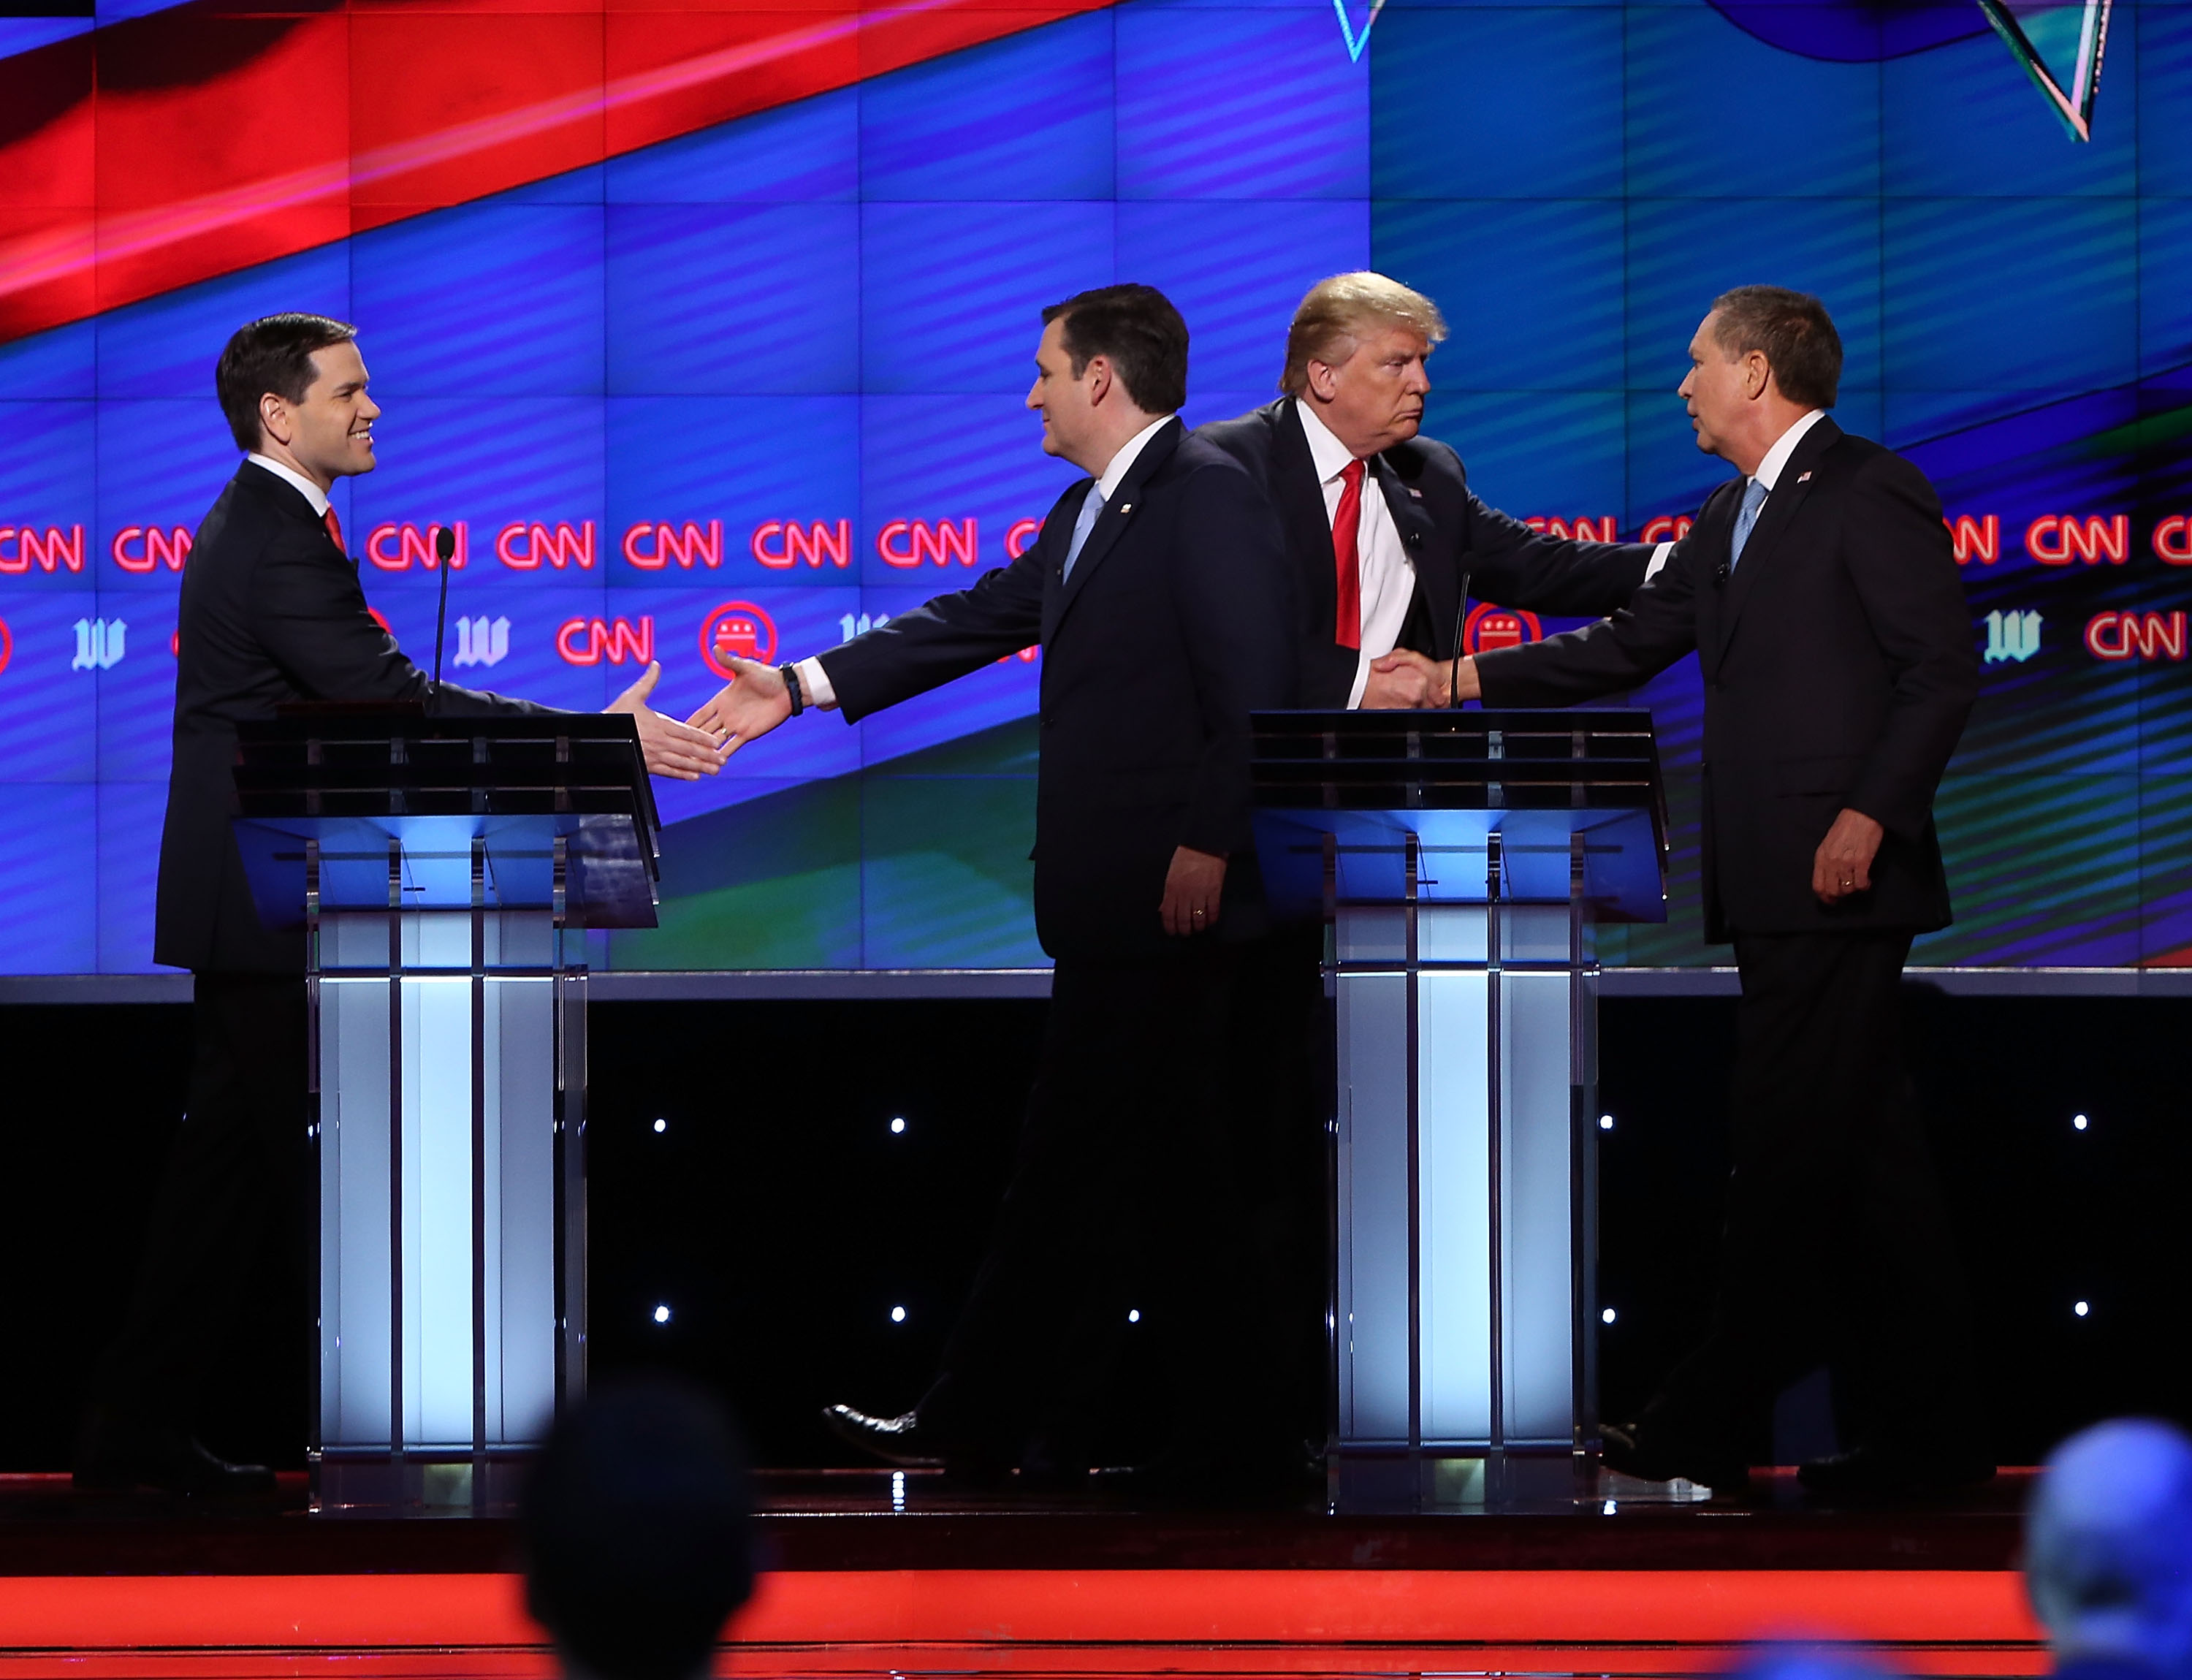 Republican presidential candidates, Sen. Marco Rubio, Sen. Ted Cruz, Donald Trump and Ohio Gov. John Kasich (L-R) shake hands at the end of their debate during the CNN, Salem Media Group, The Washington Times Republican Presidential Primary Debate on the campus of the University of Miami on March 10, 2016 in Coral Gables, Florida. (Photo by Joe Raedle/Getty Images)